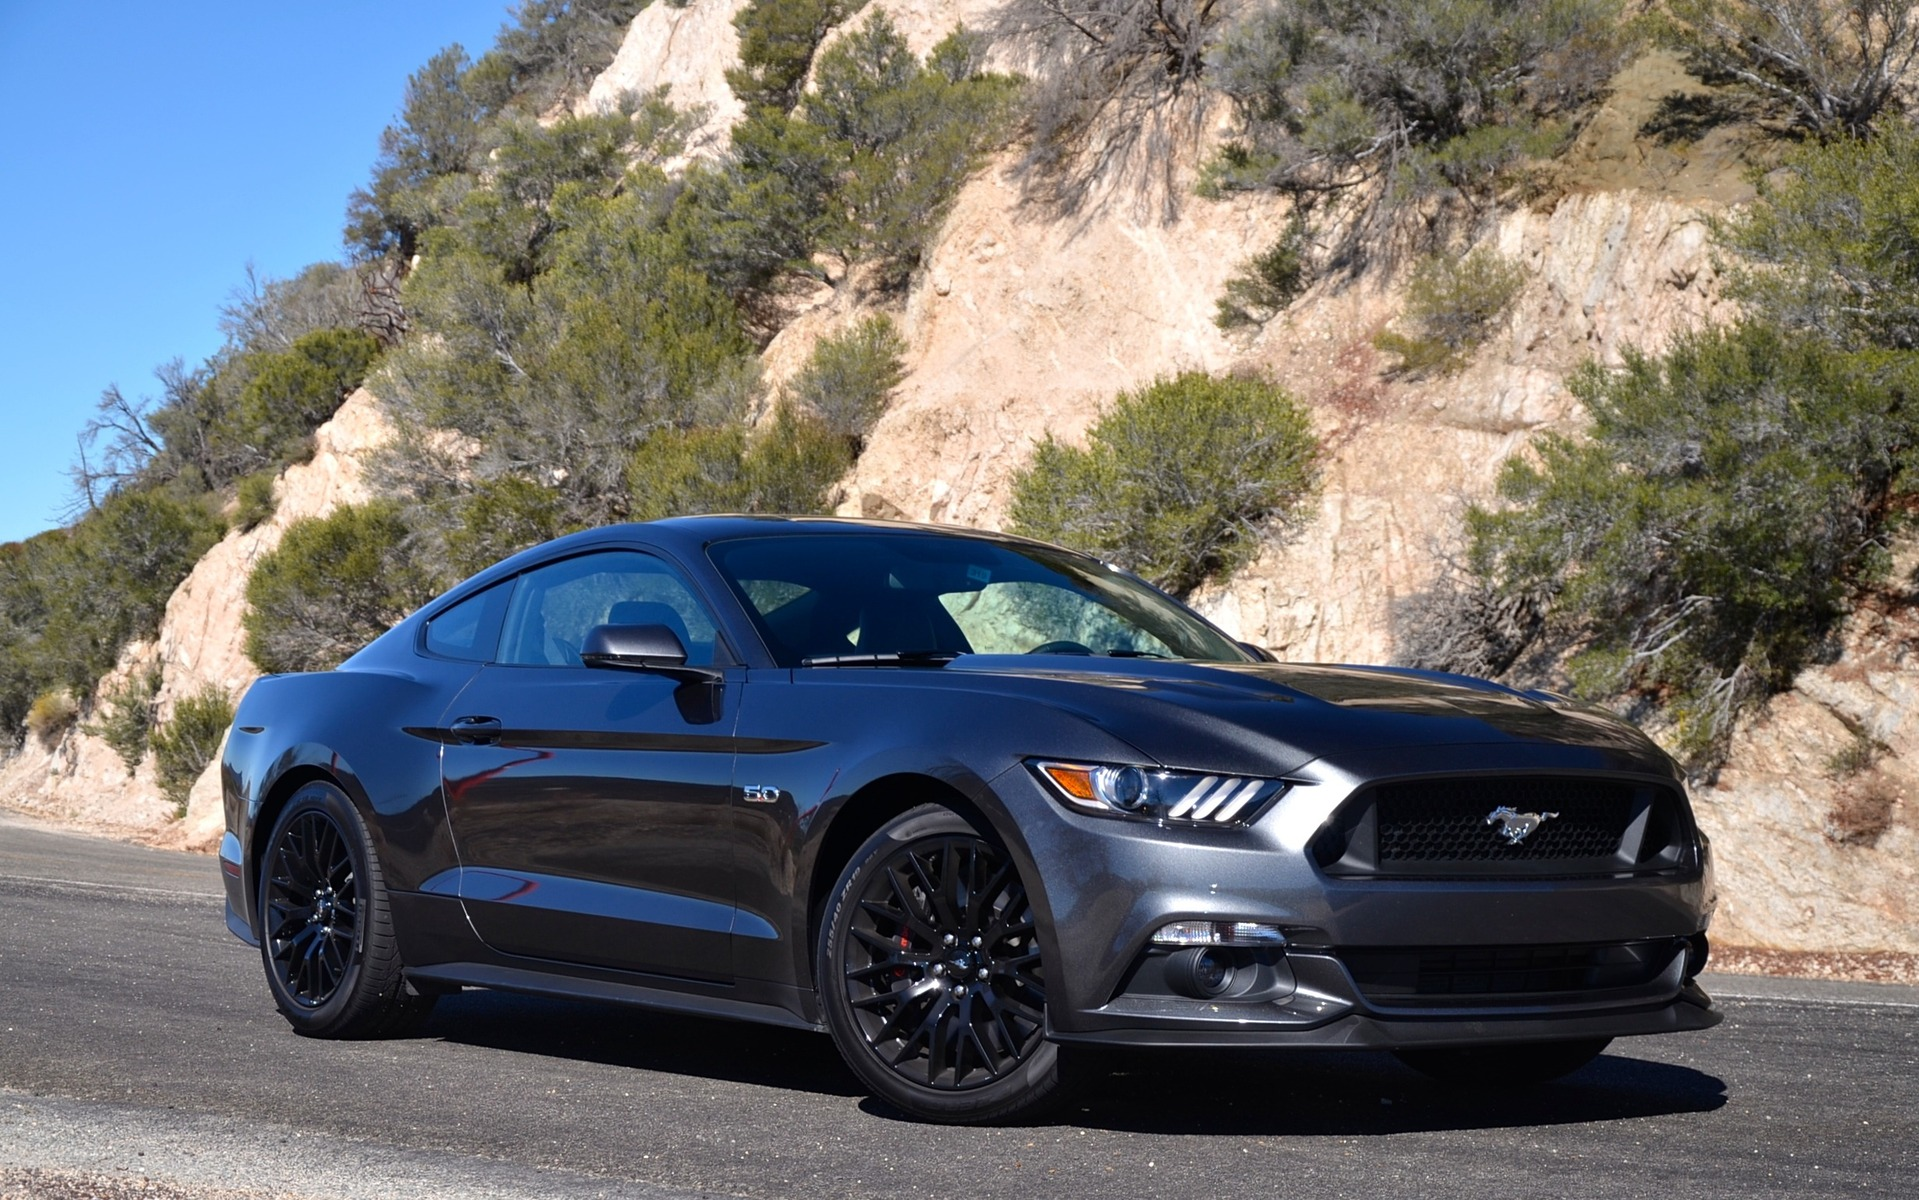 2015 ford mustang gt coupe on angeles crest highway near los angeles